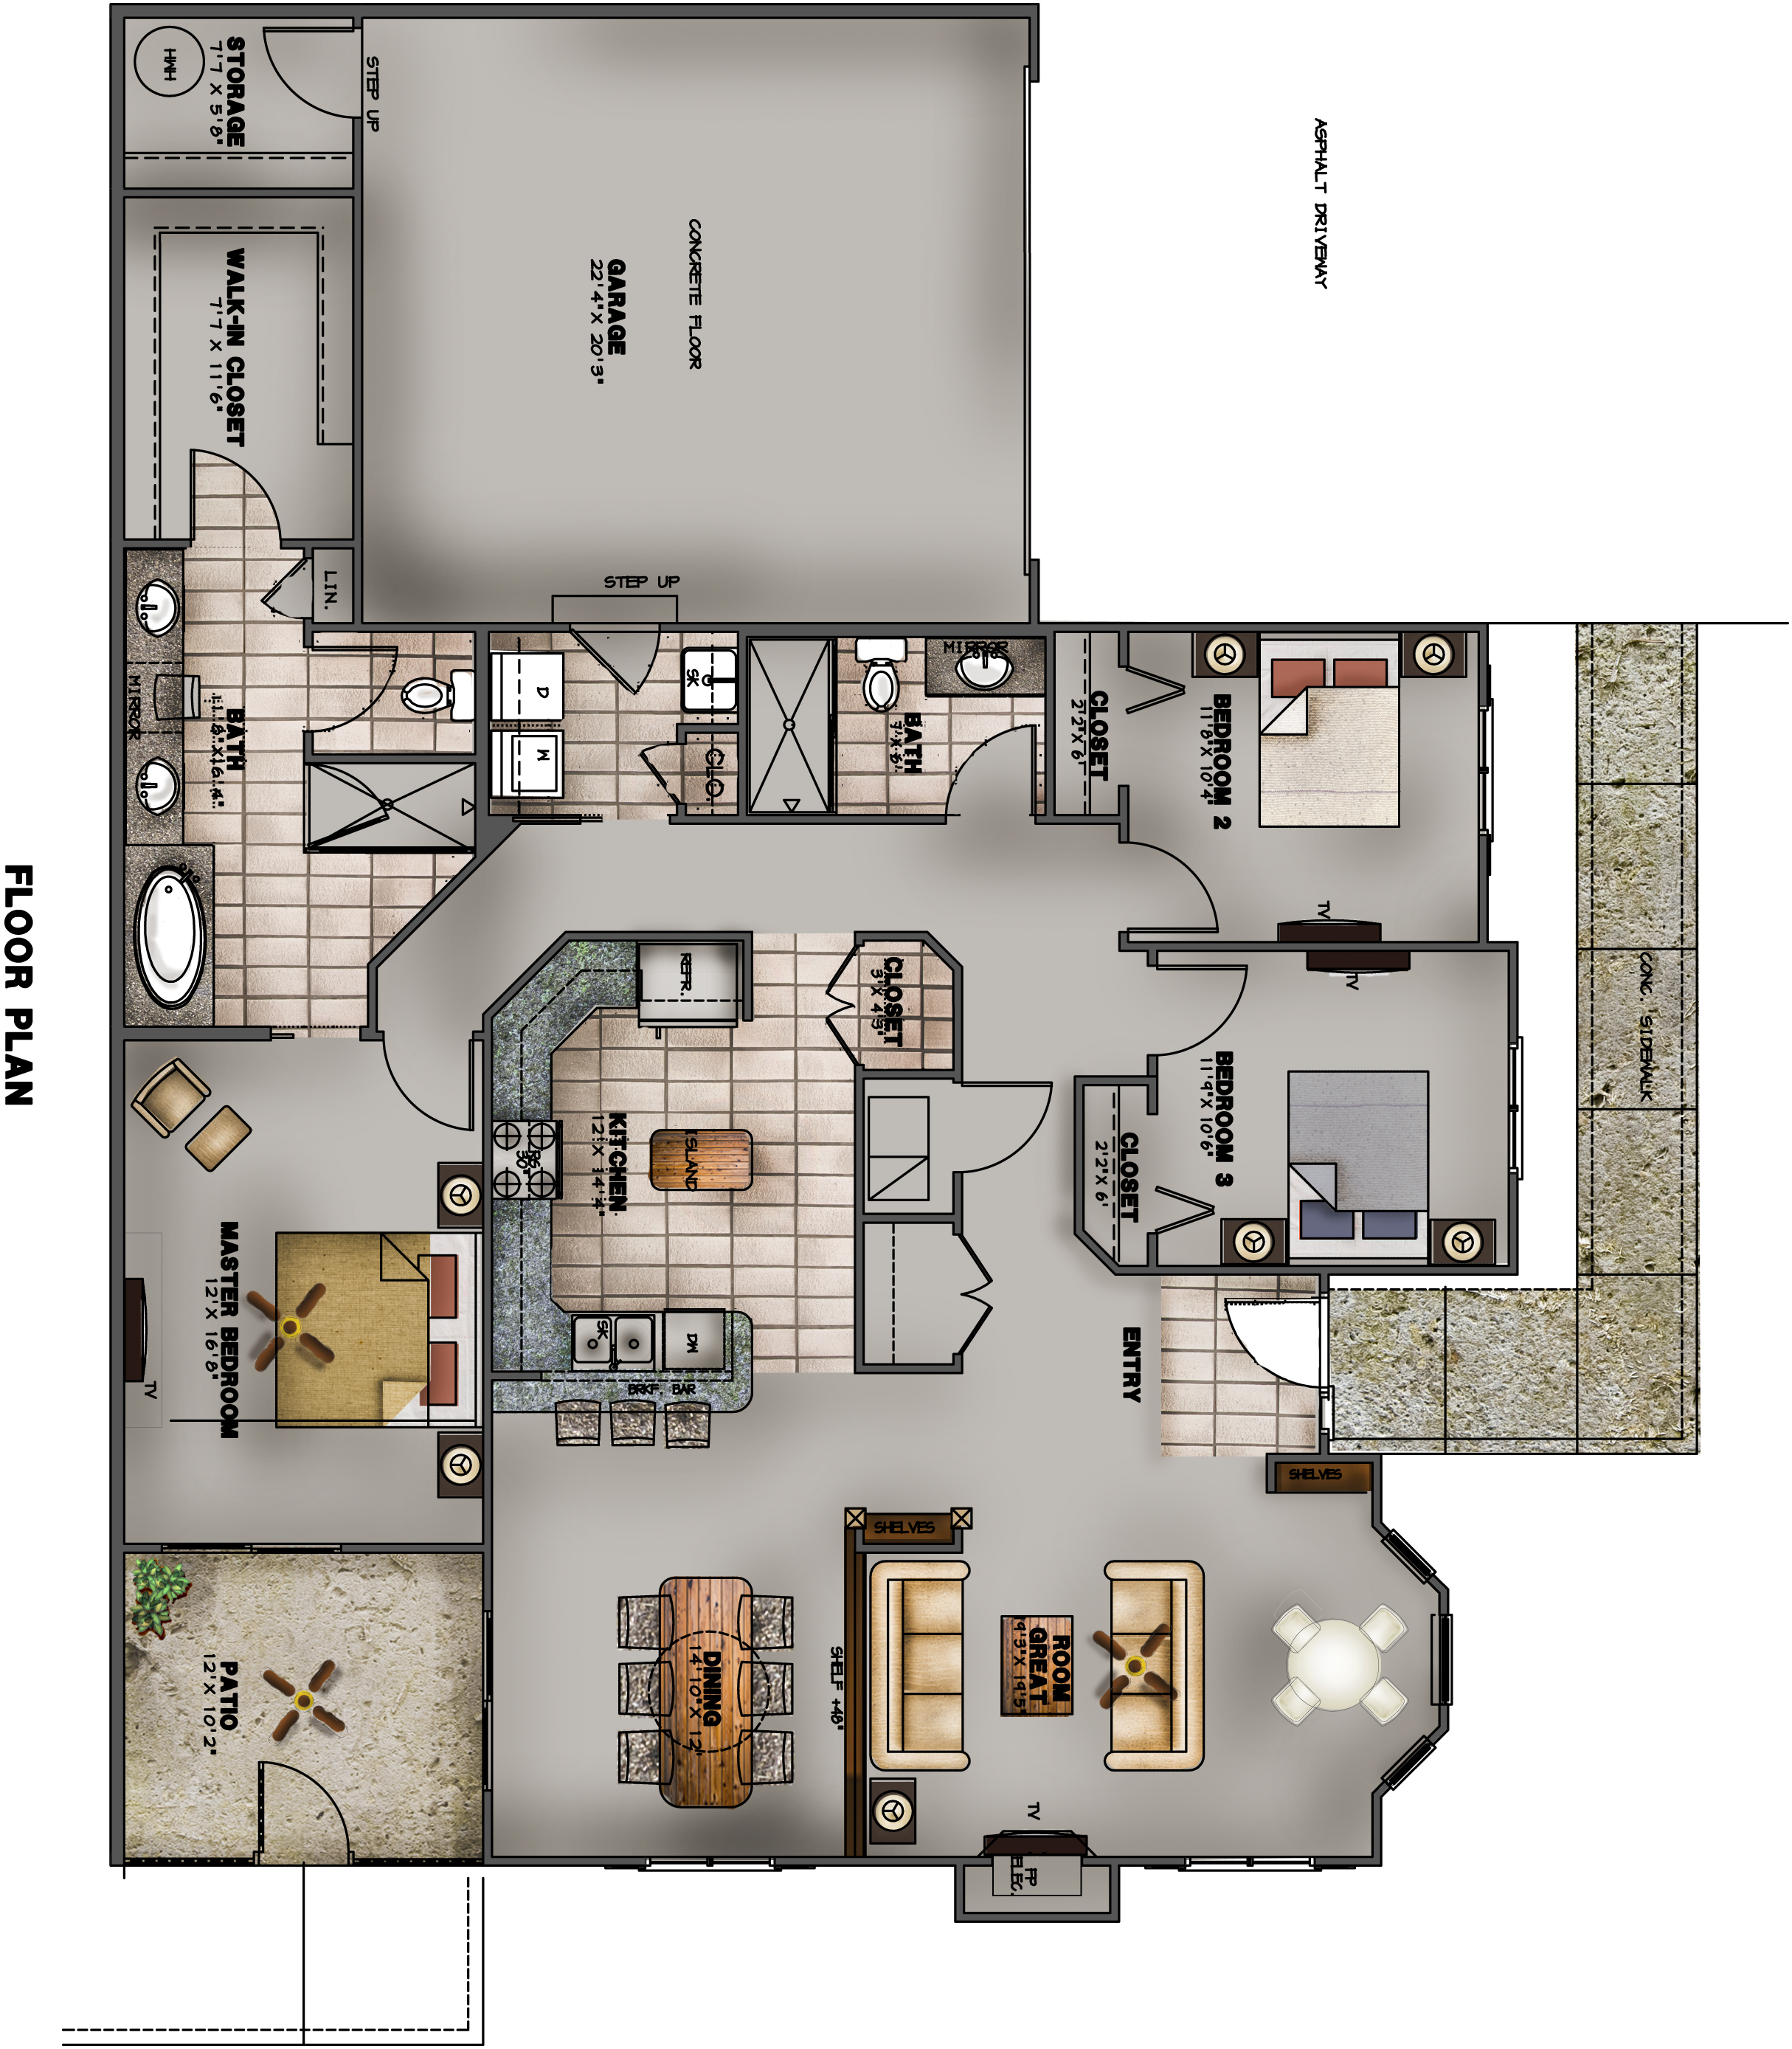 Orange Lake Resort Floor Plans Orange Lake Resort 3 Bedroom Villa Floor Plan Glif Org